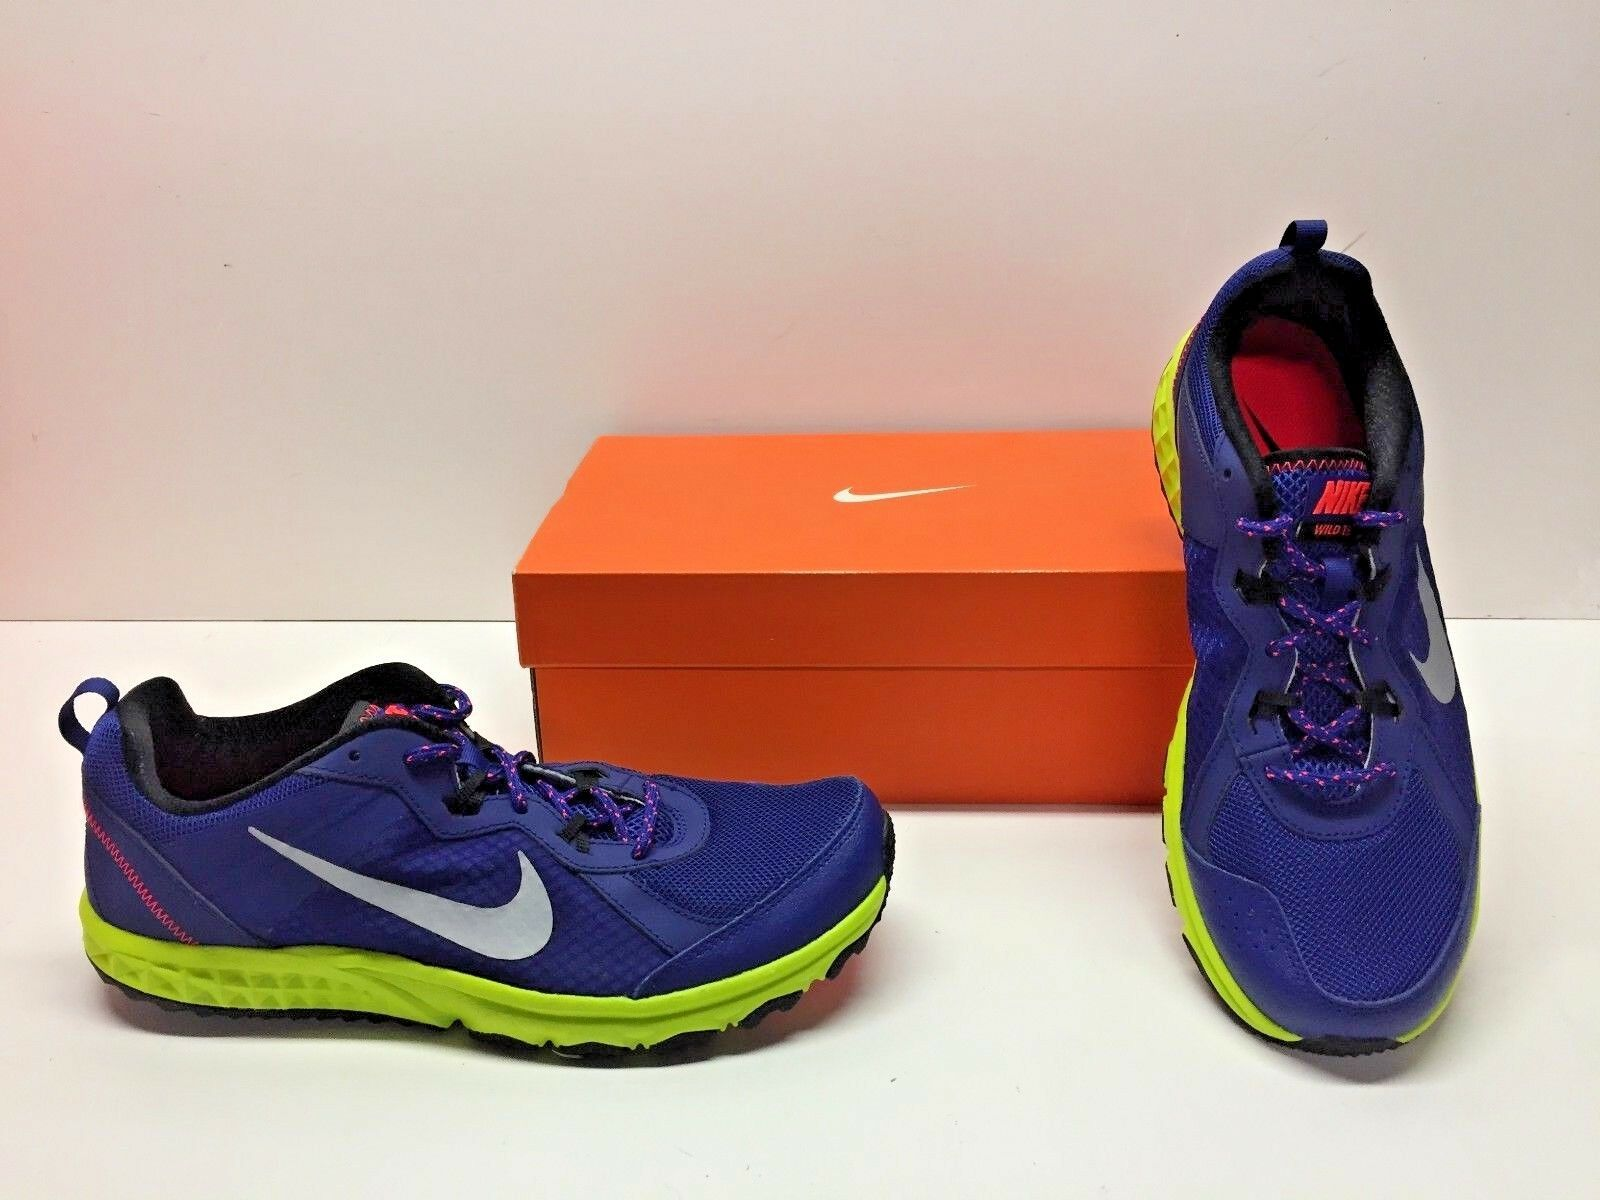 Nike Wild Trail Running Cross Training bluee Athletic Sneakers shoes Mens 10